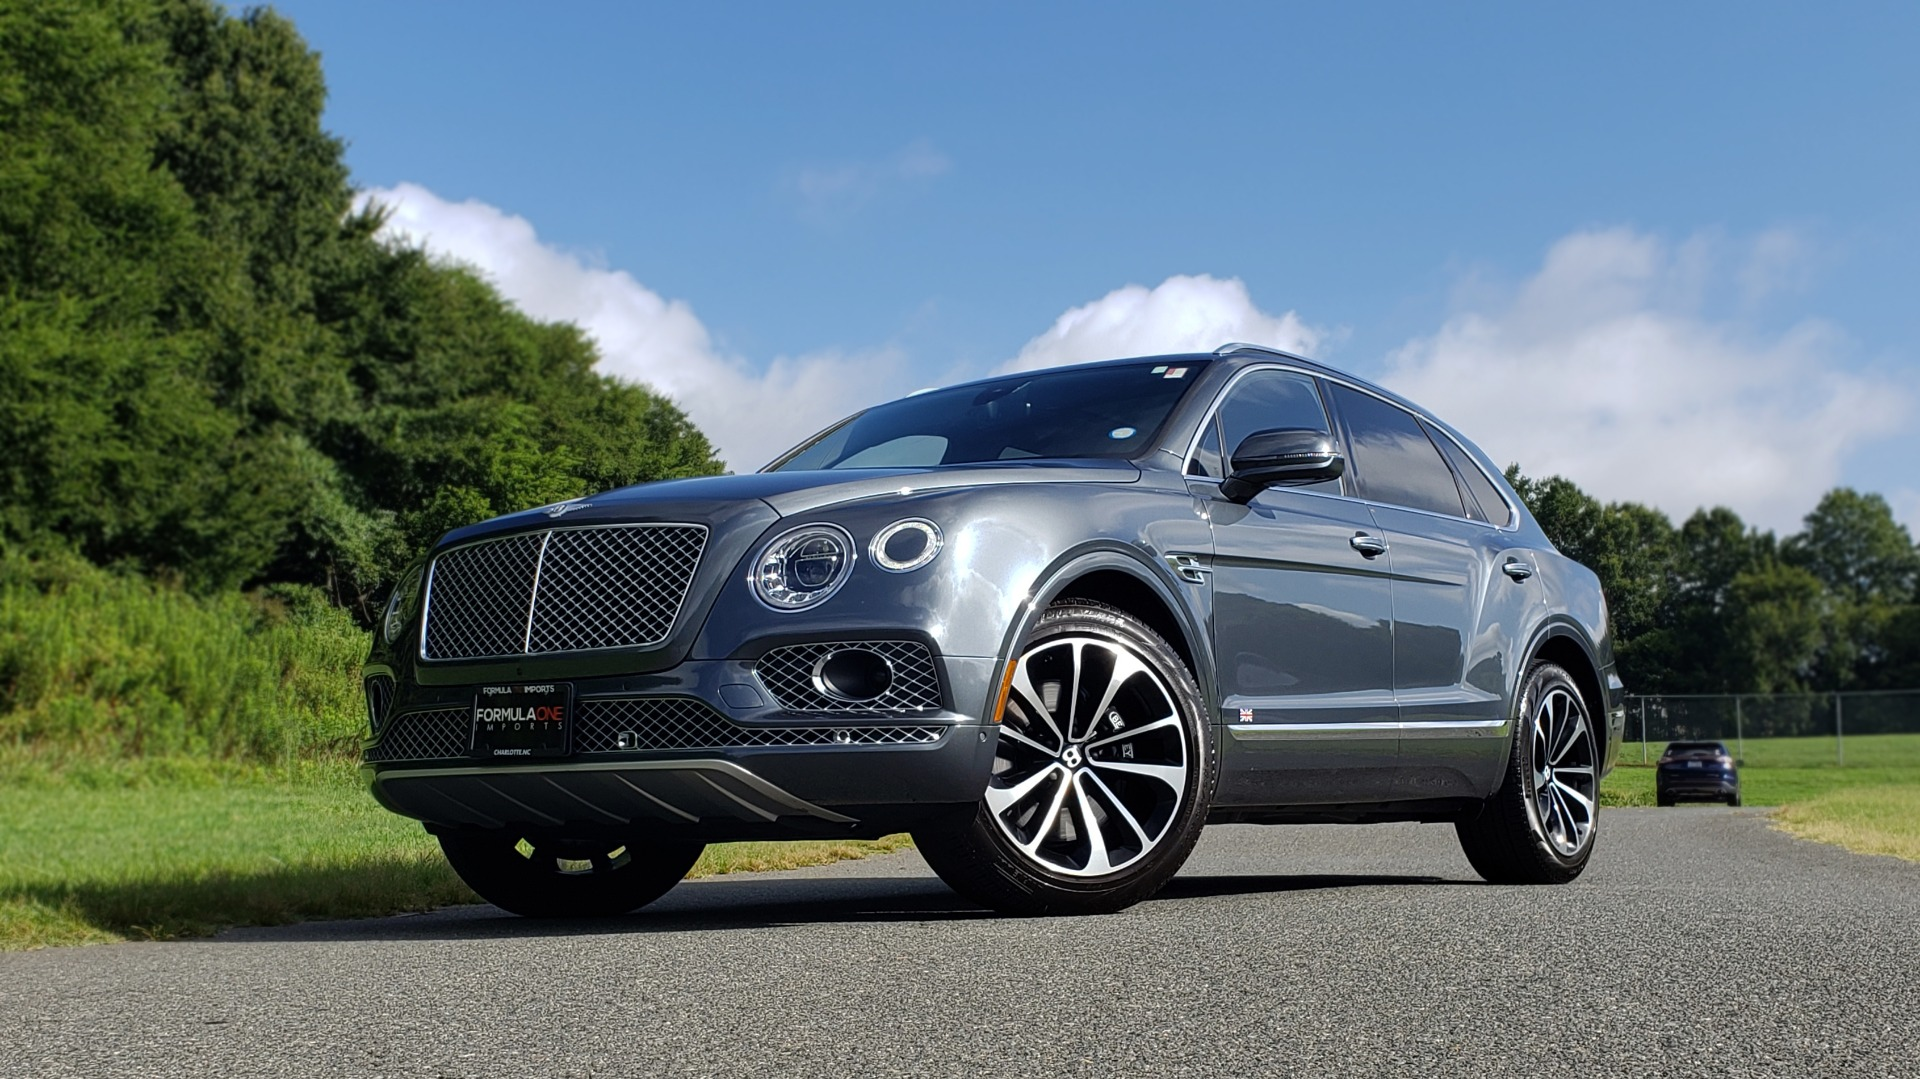 Used 2017 Bentley BENTAYGA W12 600HP / NAV / HUD / PANO-ROOF / VENT SEATS / REARVIEW for sale $144,995 at Formula Imports in Charlotte NC 28227 2